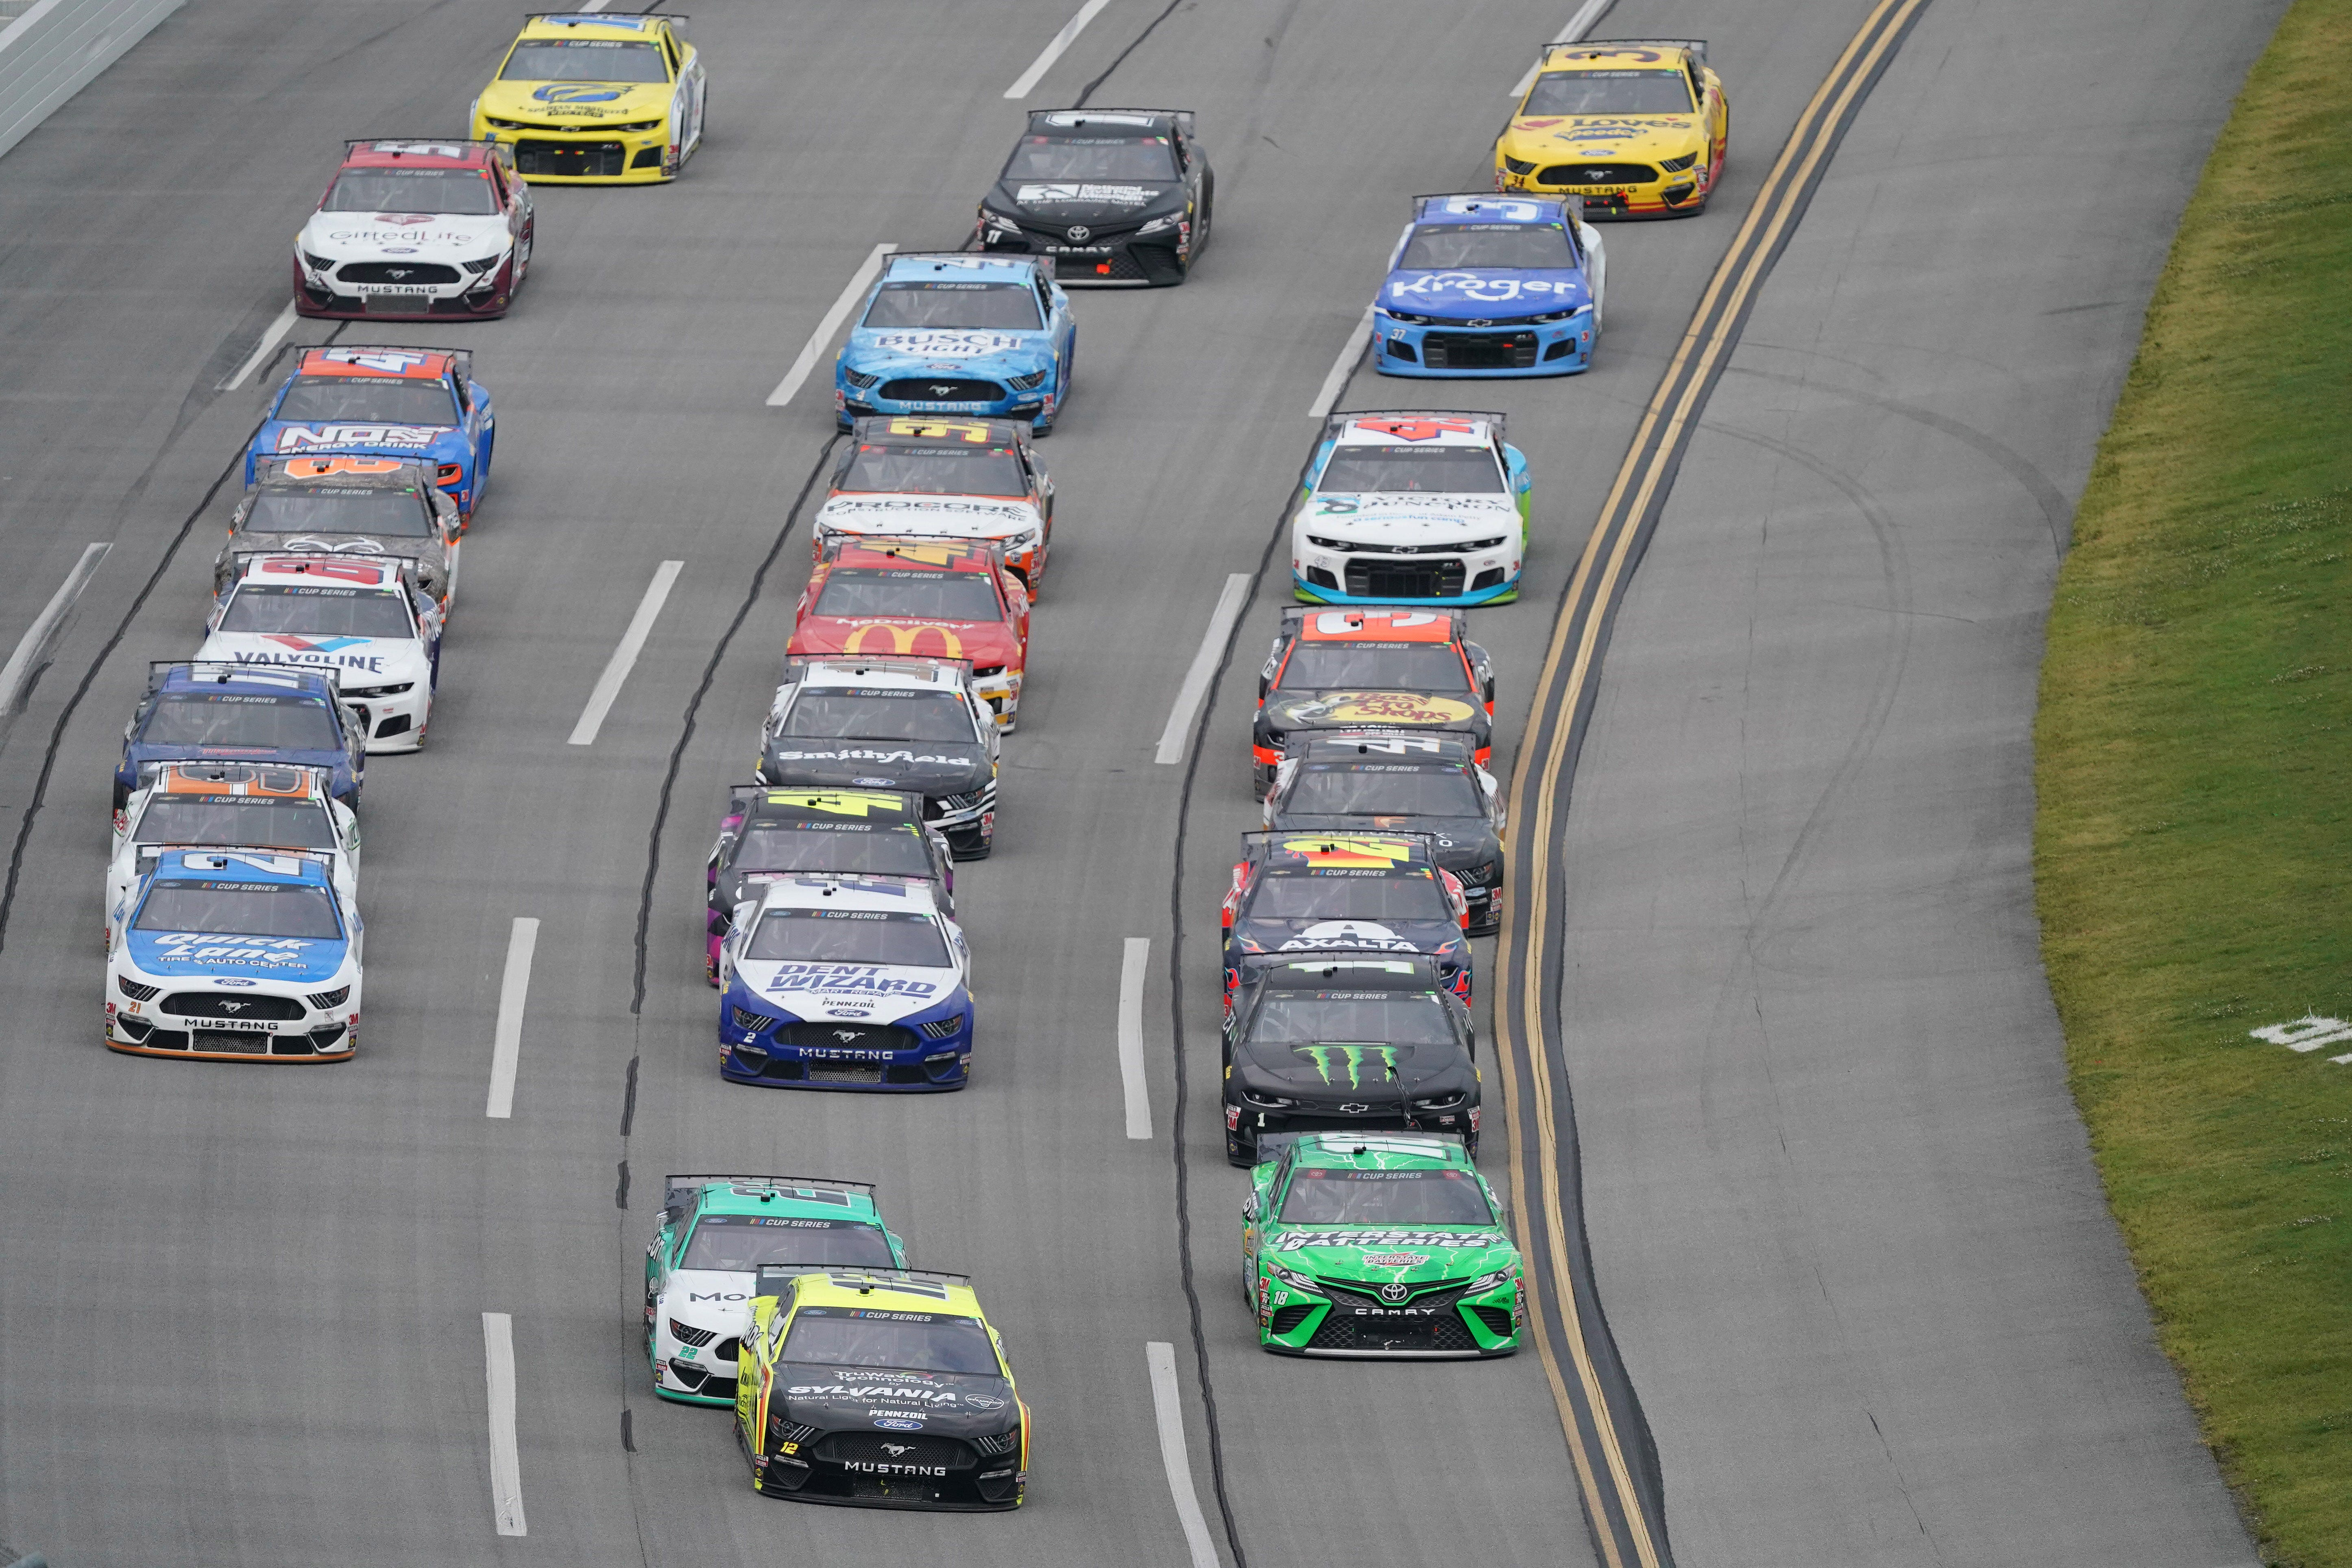 NASCAR Talladega playoff race: Start time, lineup, TV, radio schedule for the YellaWood 500